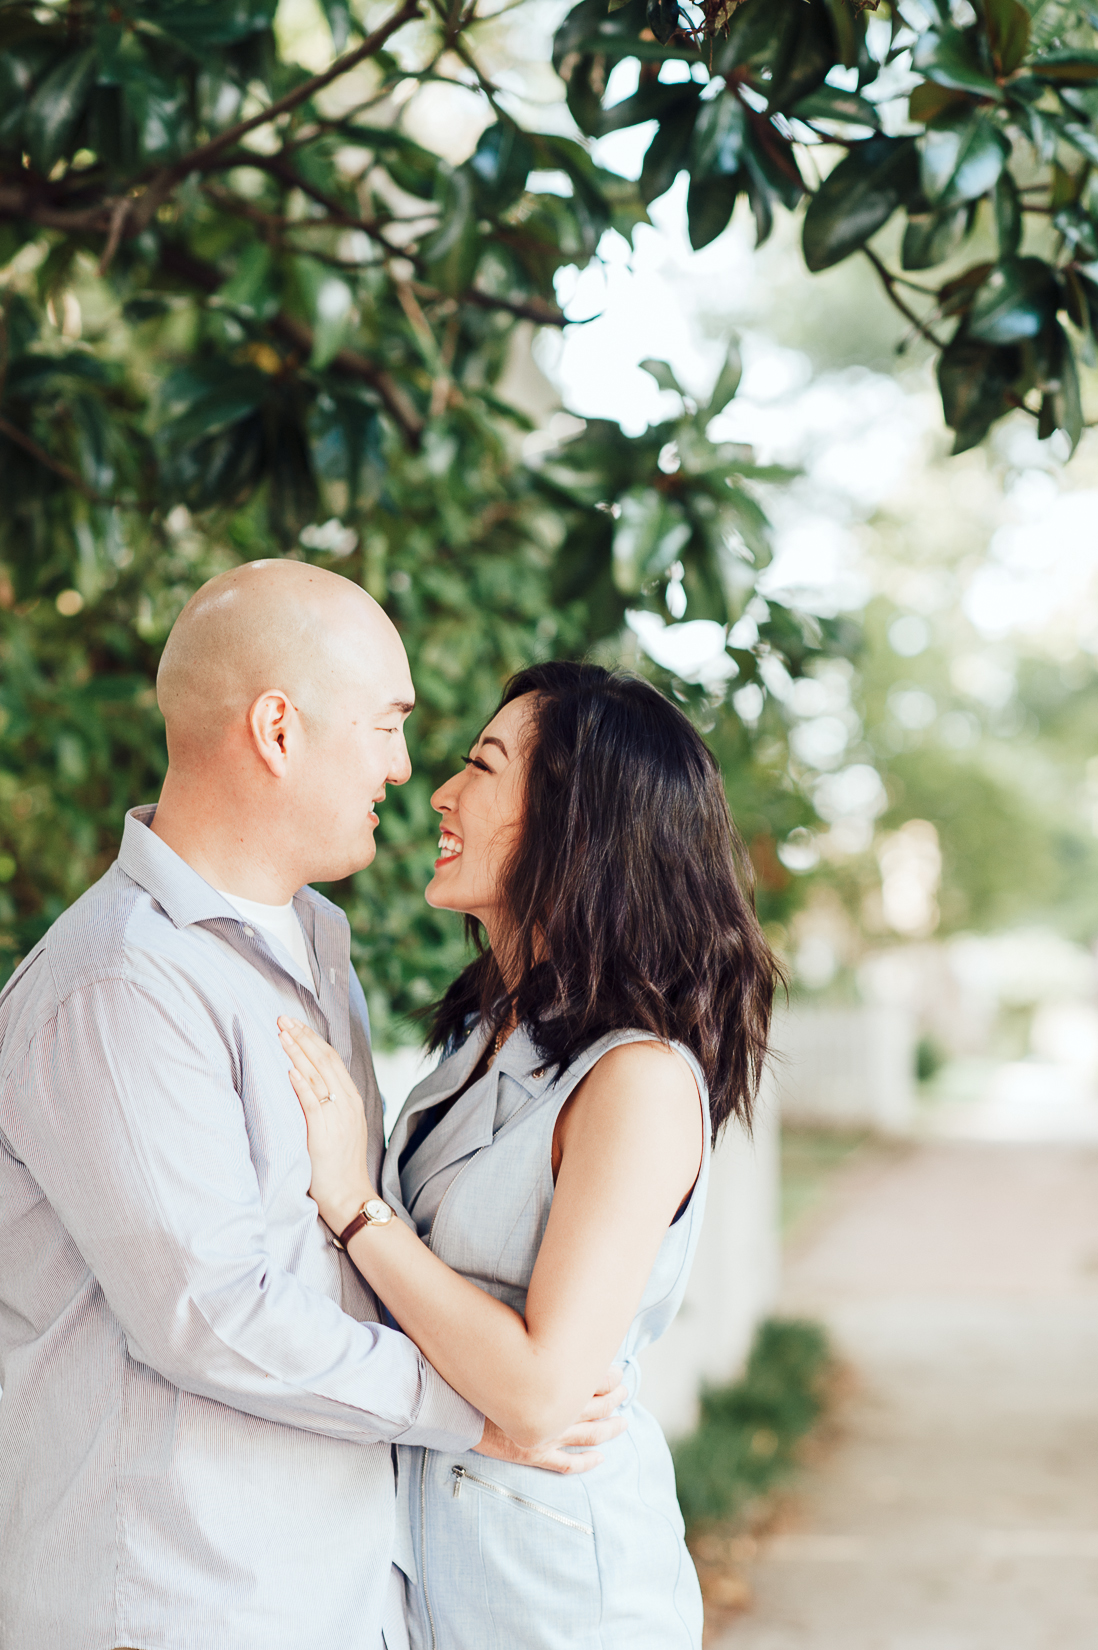 engagement_downtown_fredericksburg_virginiaweddingphotographer_youseephotography_HelenPaul (3).jpg